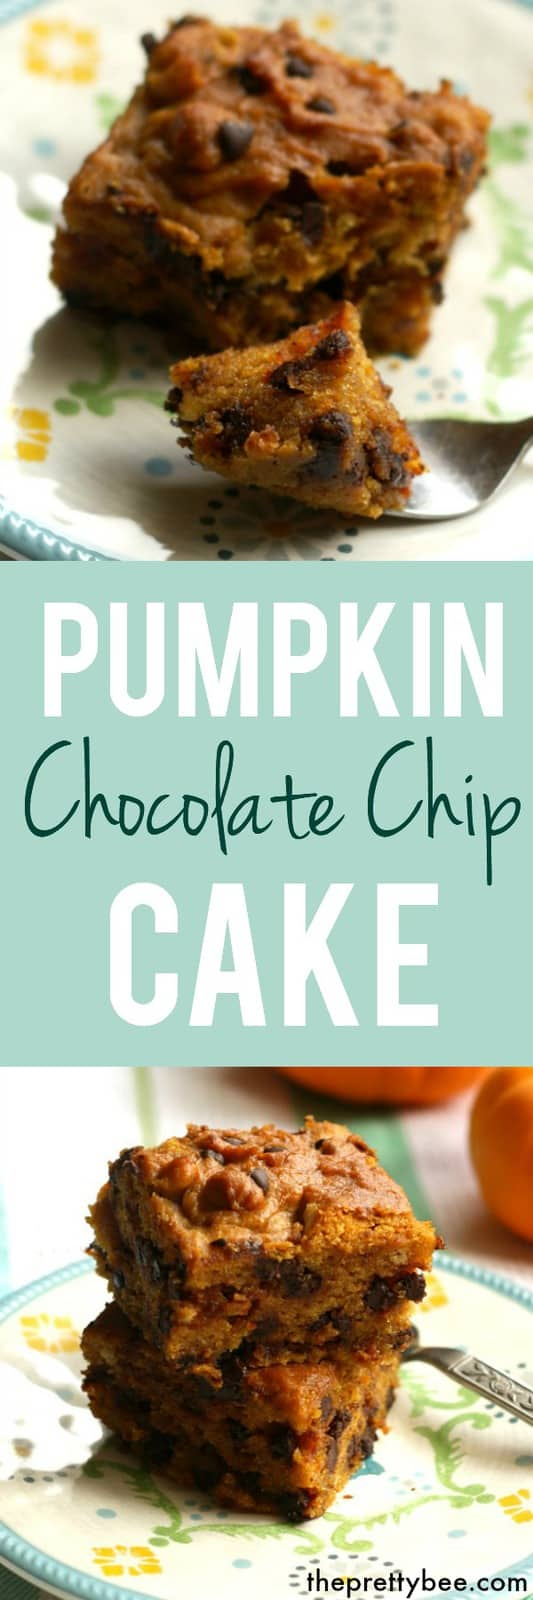 Delicious, moist chocolate chip pumpkin cake. A fall recipe that will be a real crowd pleaser! #pumpkin #glutenfree #vegan #dairyfree